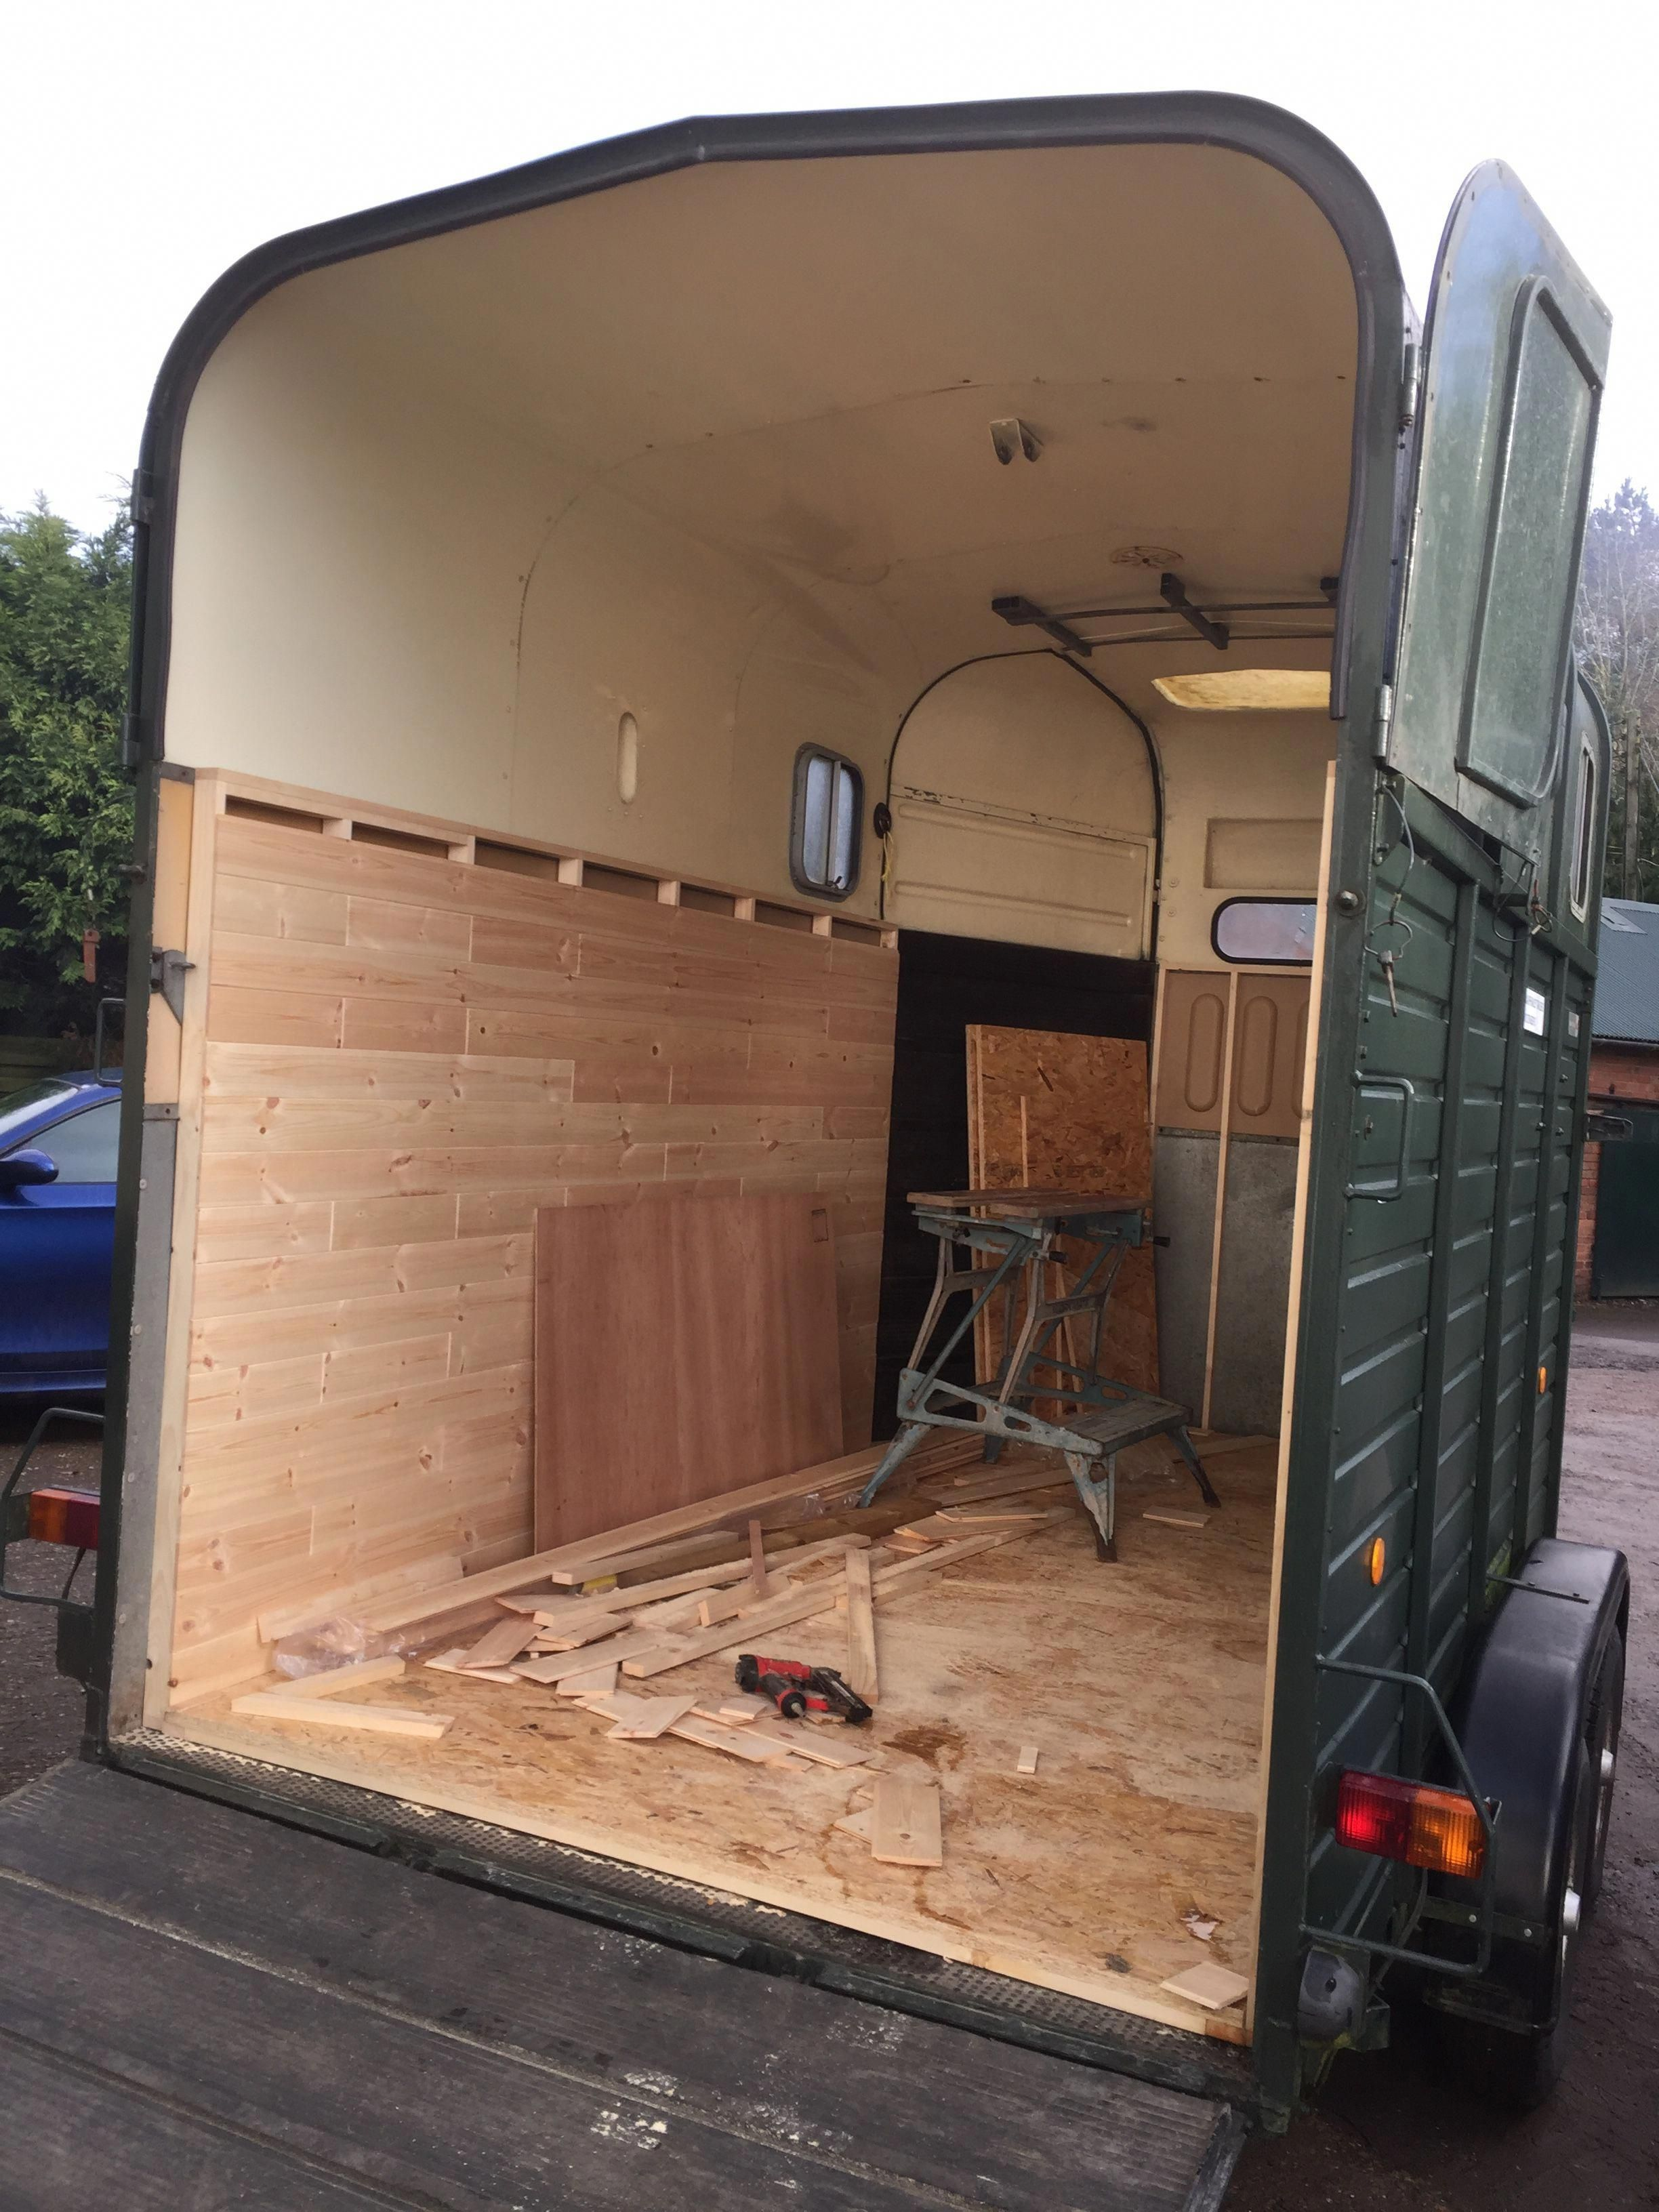 Find Out More Info On Horse Trailer Visit Our Web Site Converted Horse Trailer Coffee Trailer Horse Trailer